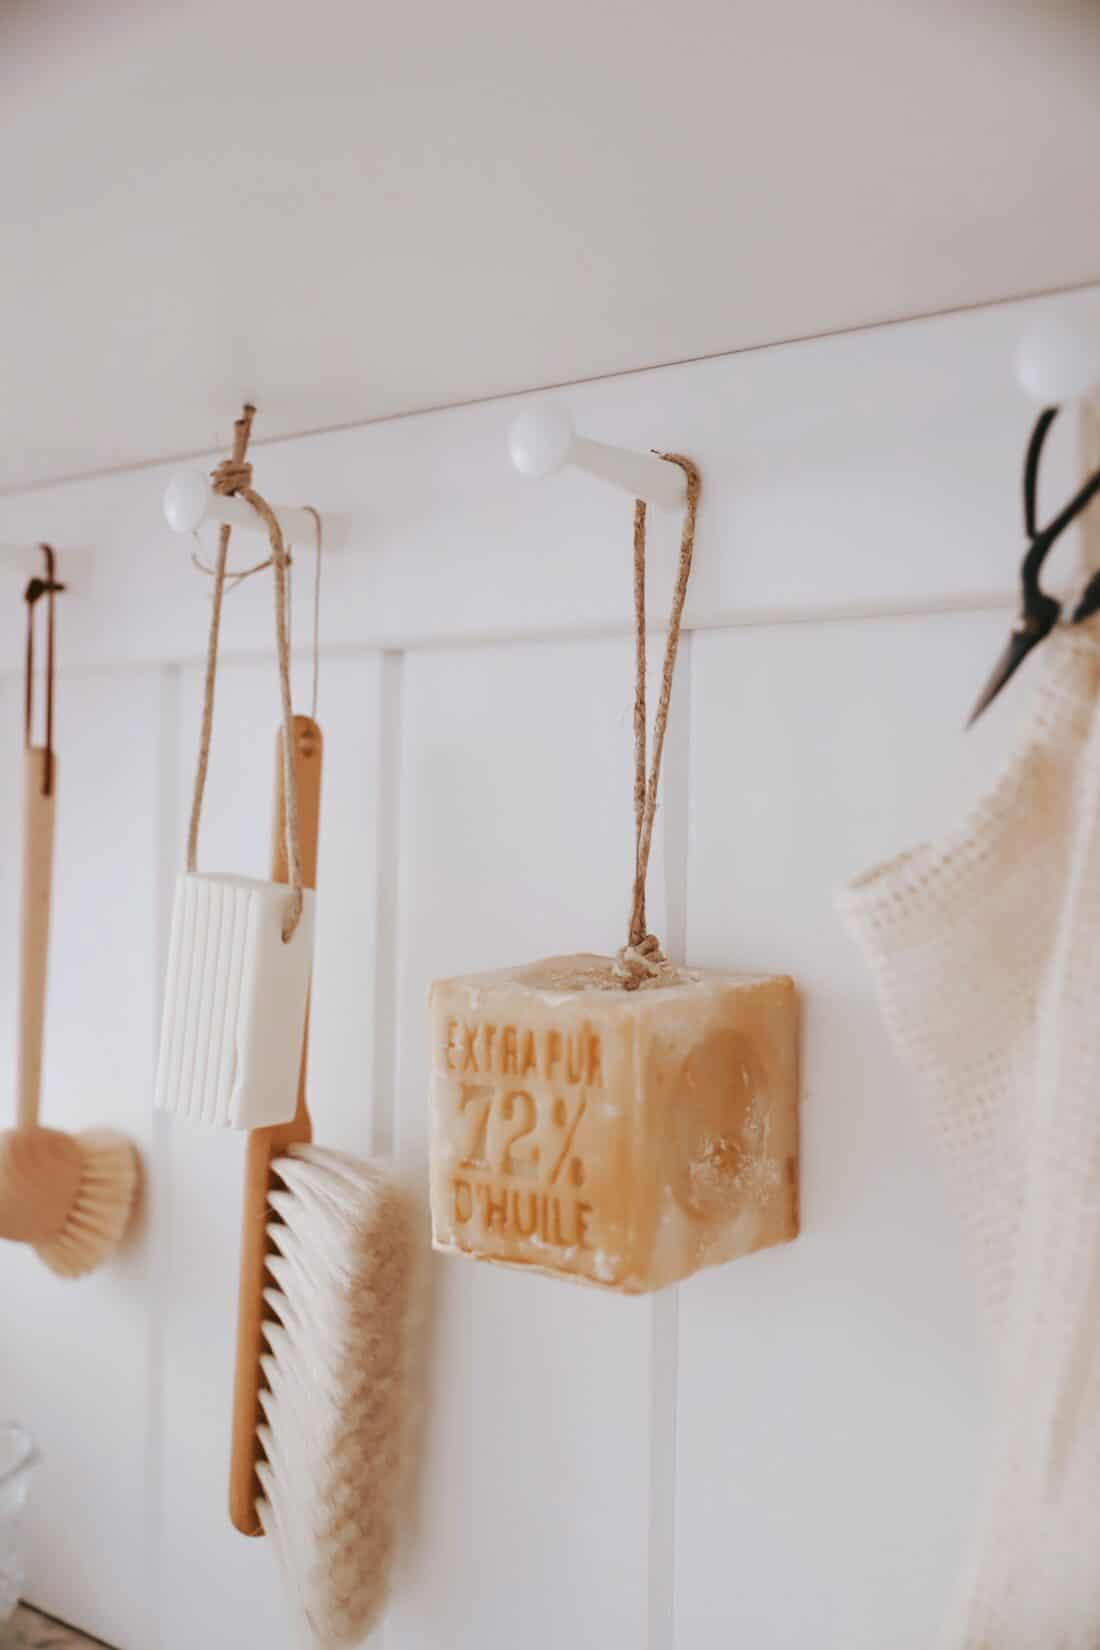 wooden peg rack in a kitchen with french soap on a rope and wooden brushes hanging from it